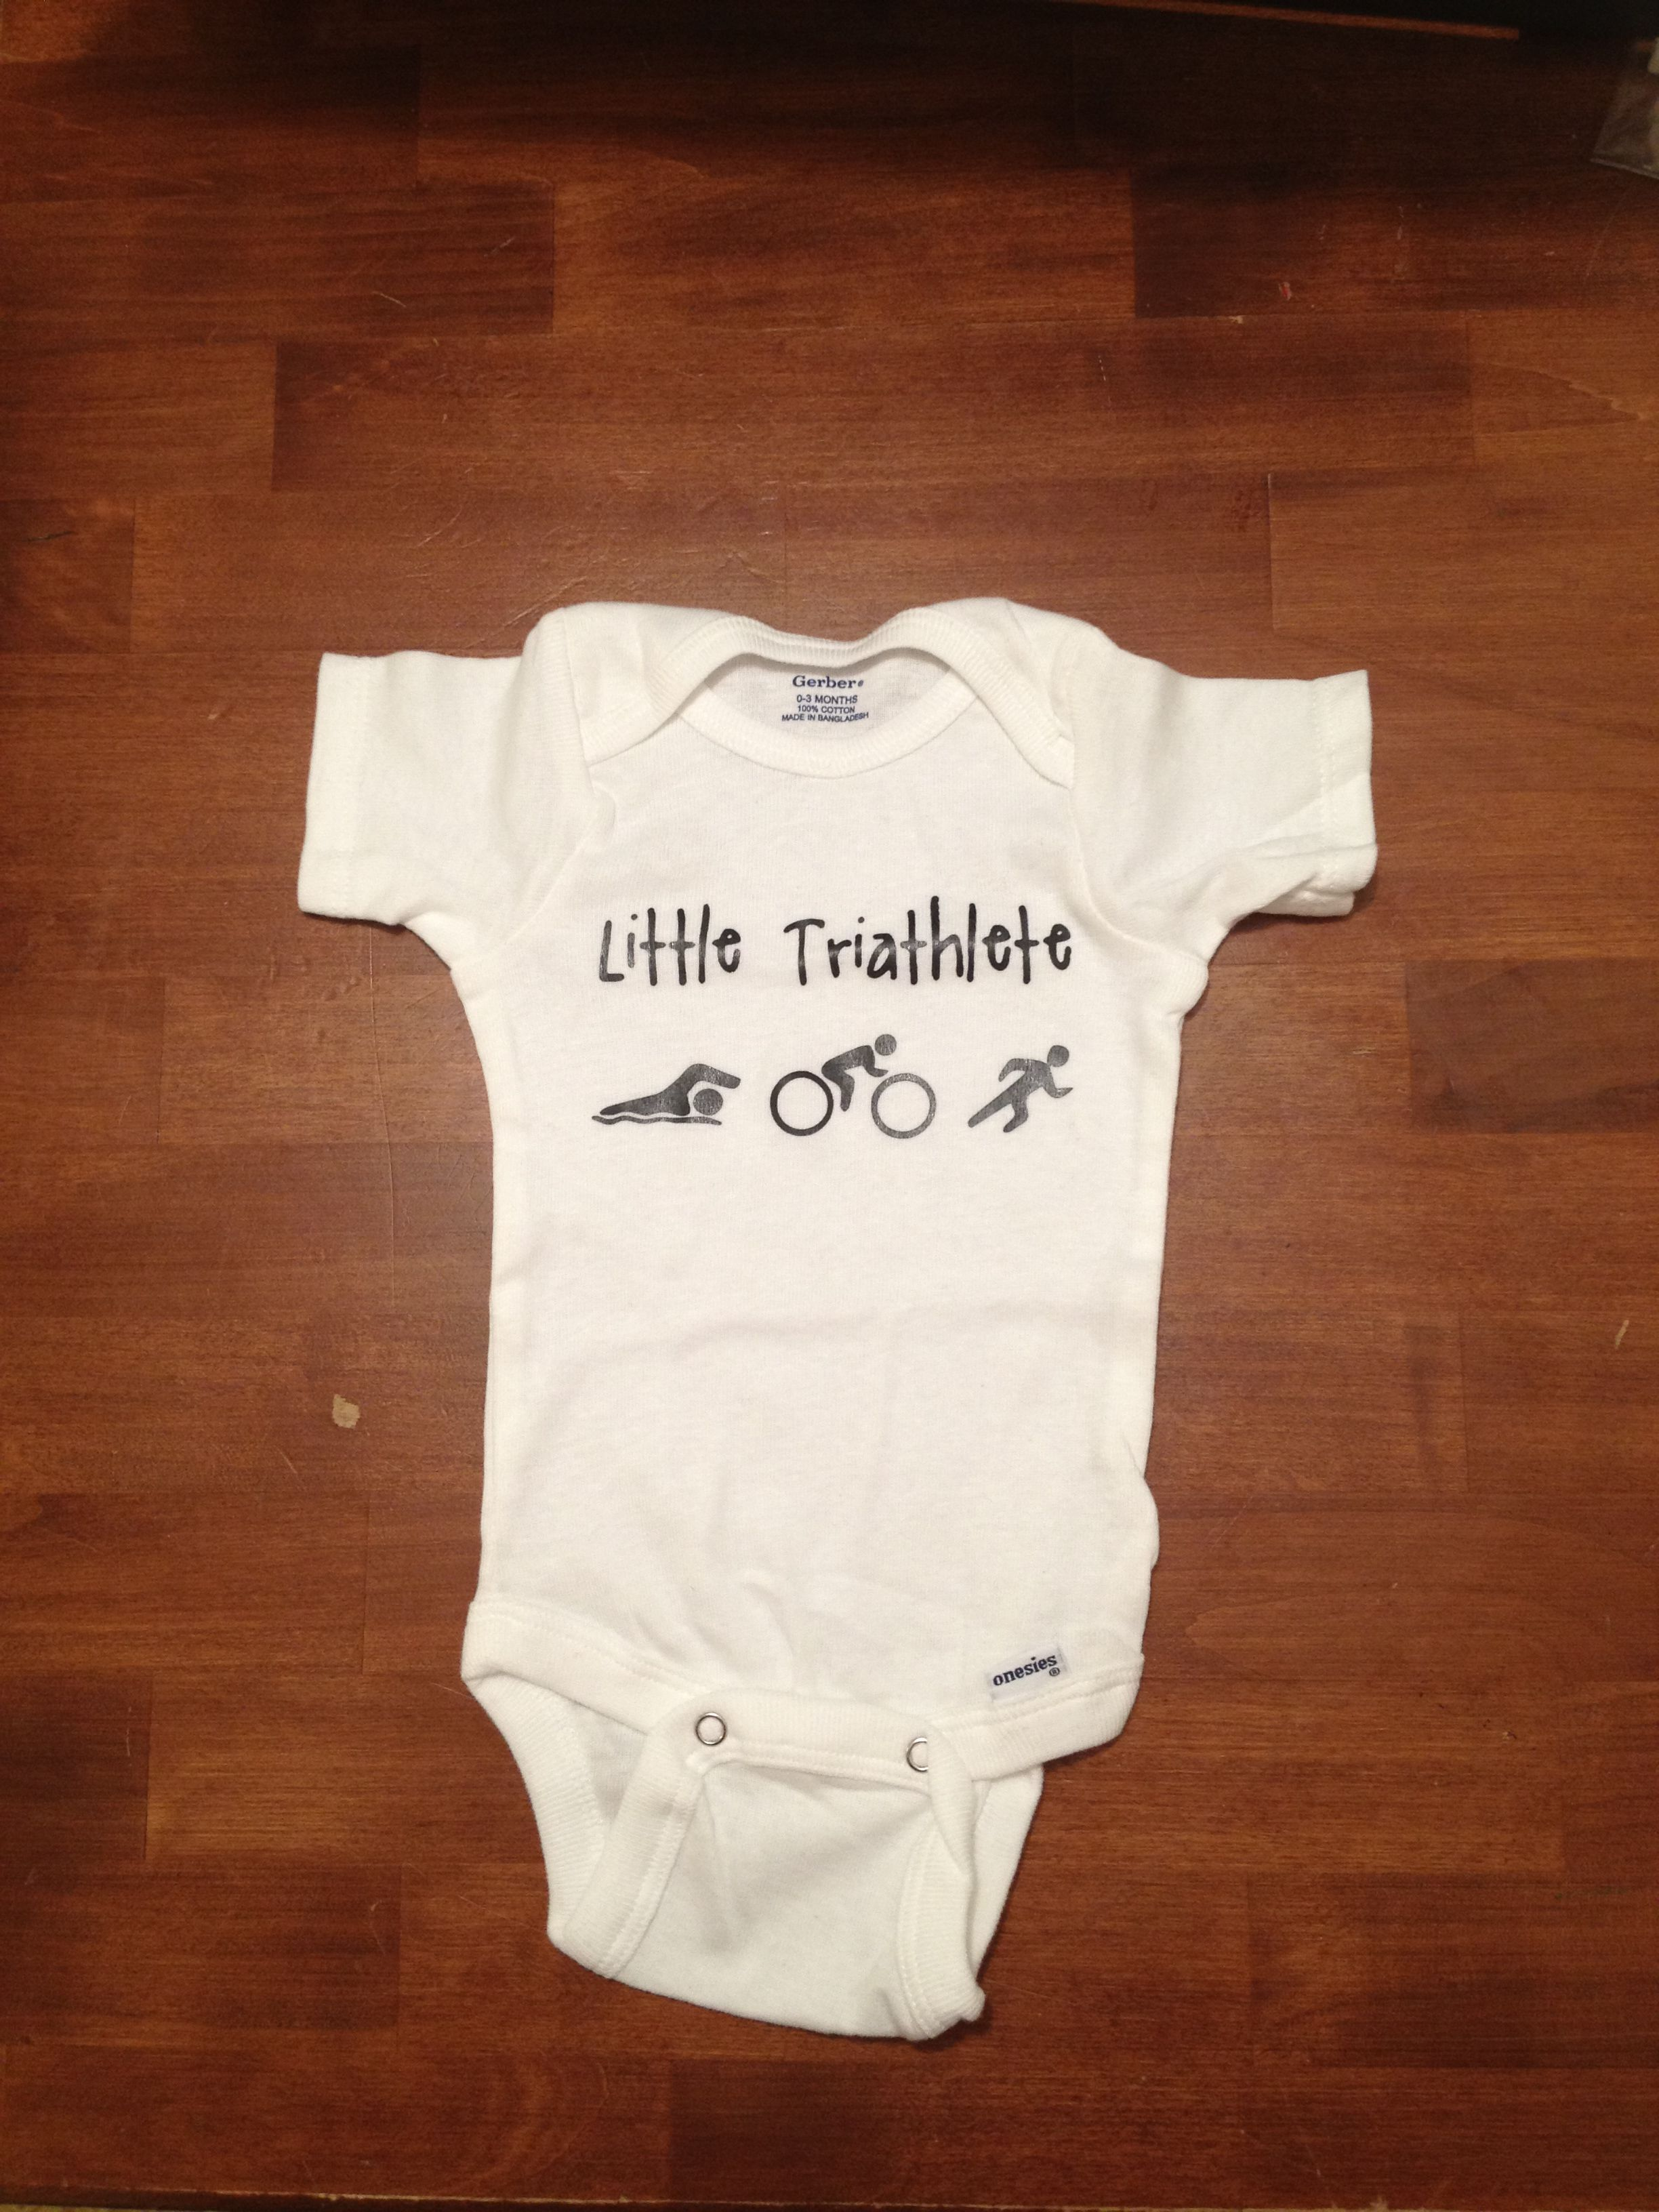 b8638d4b I had this printed to announce that we were pregnant to my hubby. He is a  triathlete so it was fitting! triathlete triathlon pregnant pregnancy  announcement ...